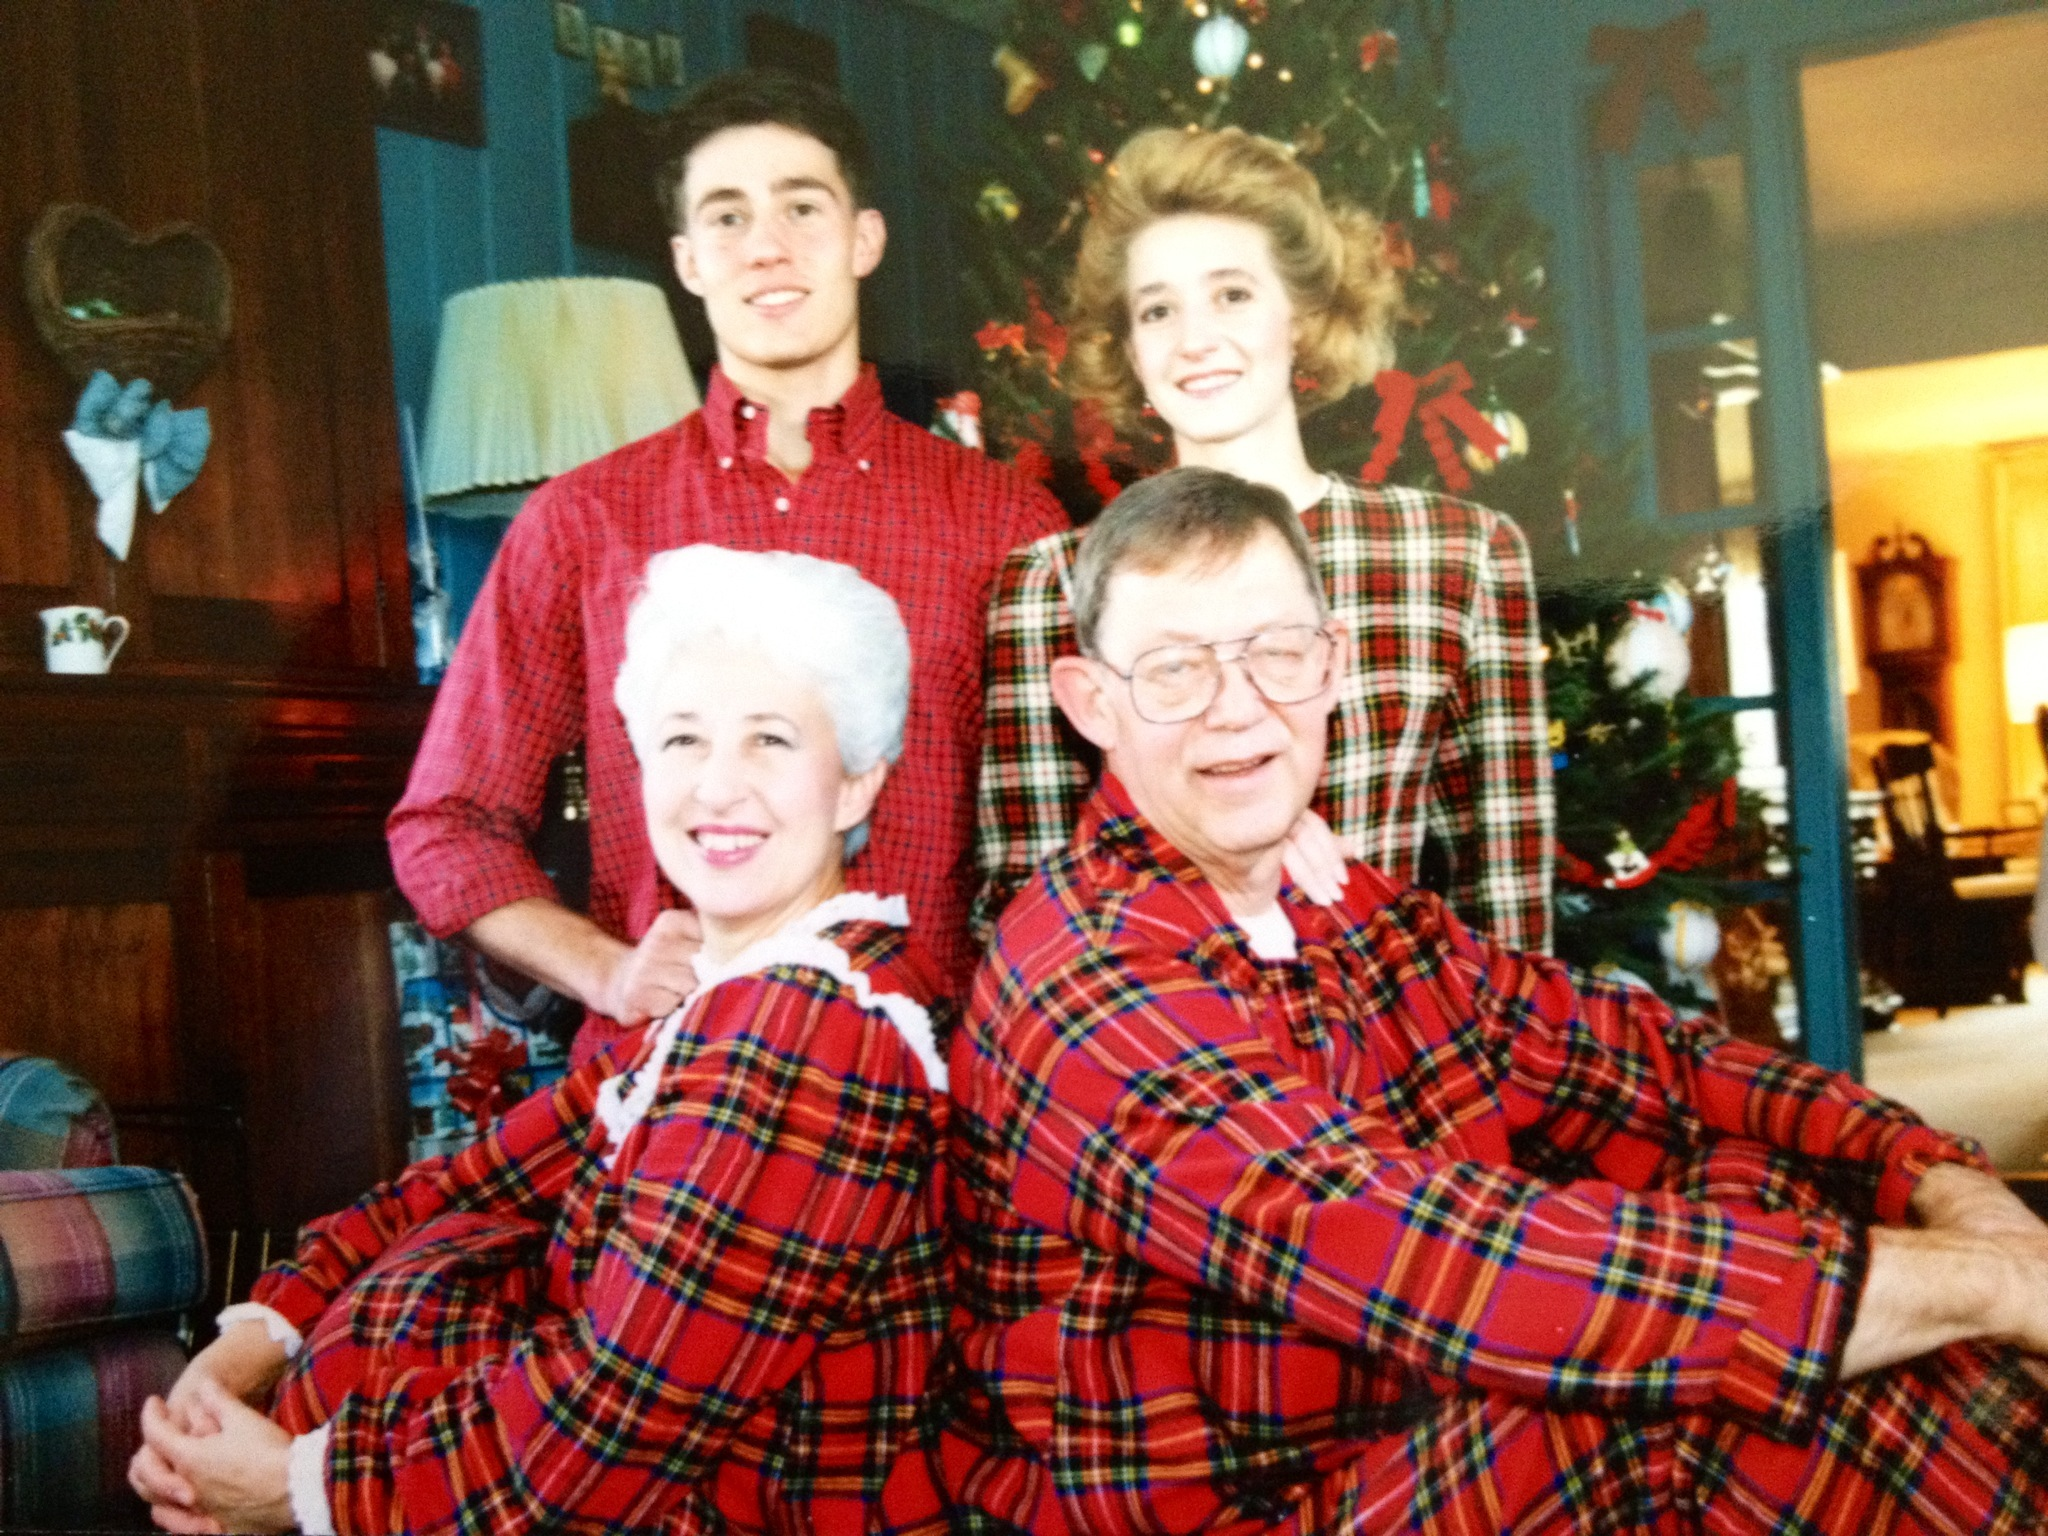 funny christmas photos, matching pajamas